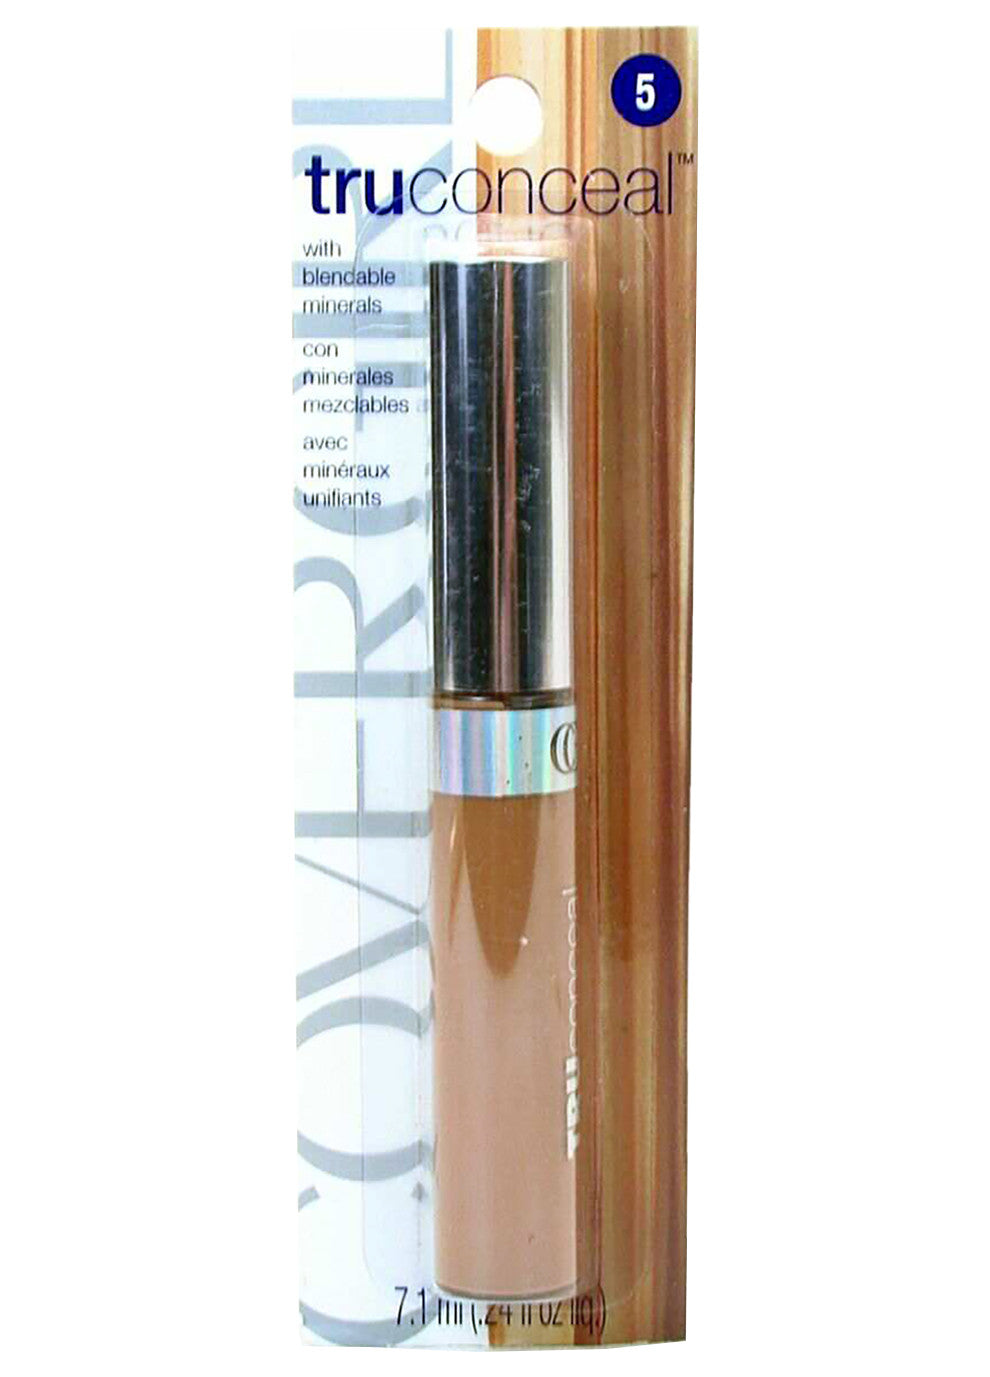 CoverGirl TRUconceal Concealer #5 With Blendable Minerals